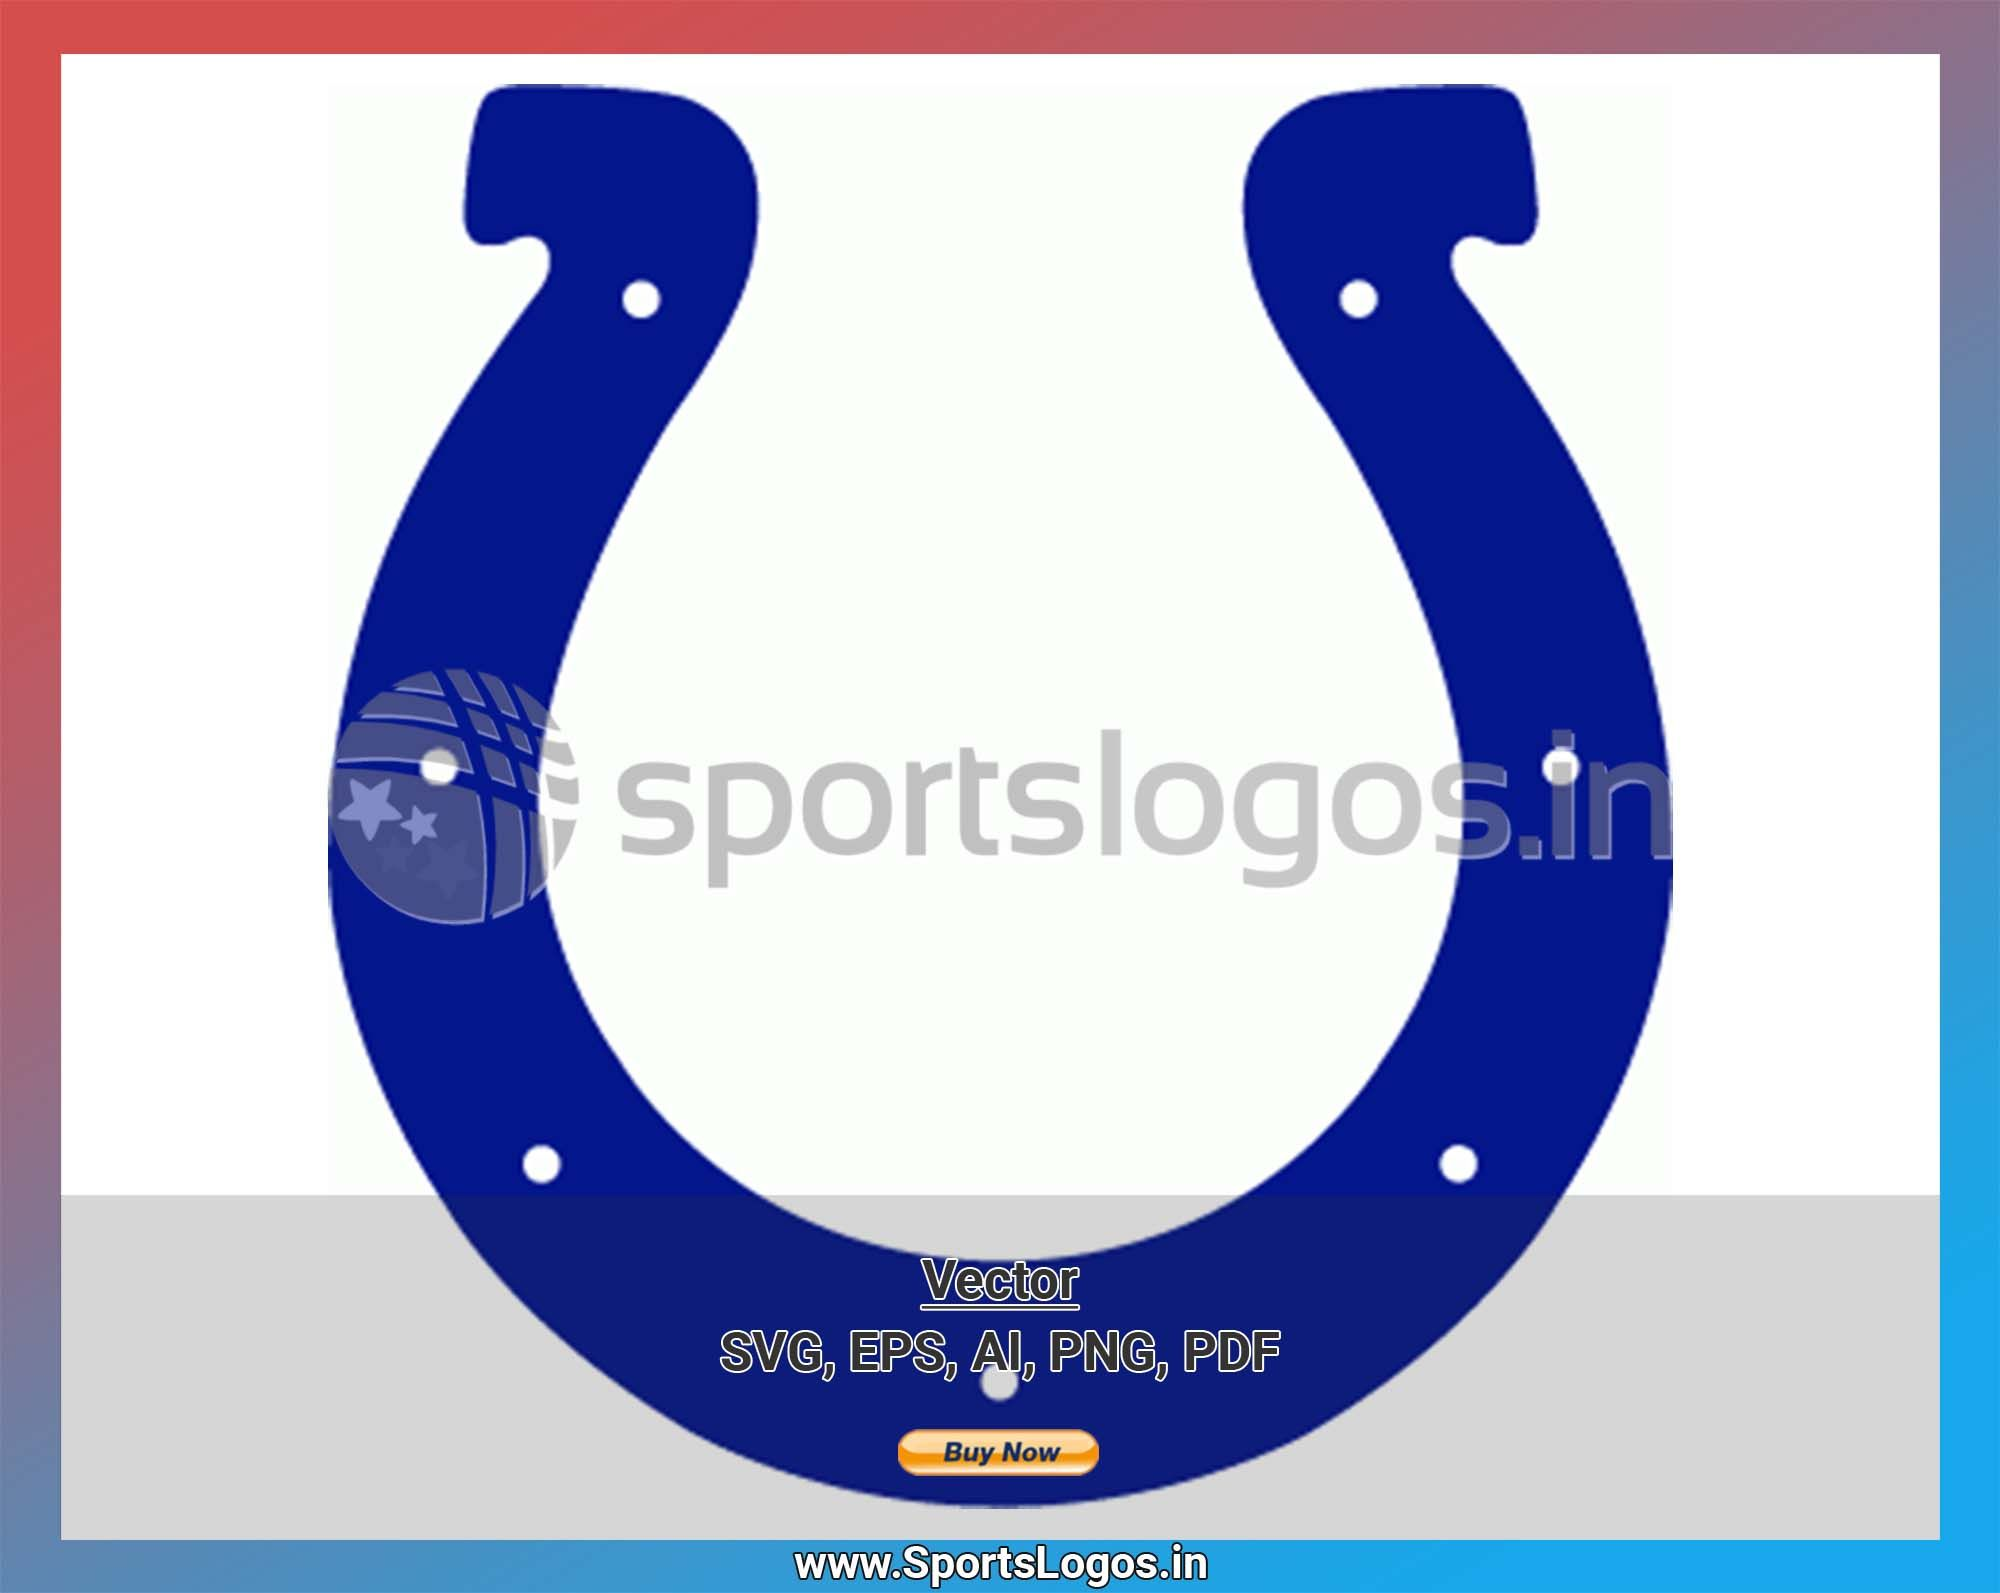 Indianapolis Colts Football Sports Vector Svg Logo In 5 Formats Spln001989 Sports Logos Embroidery Vector For Nfl Nba Nhl Mlb Milb And More Indianapolis Colts Football Colts Football National Football League